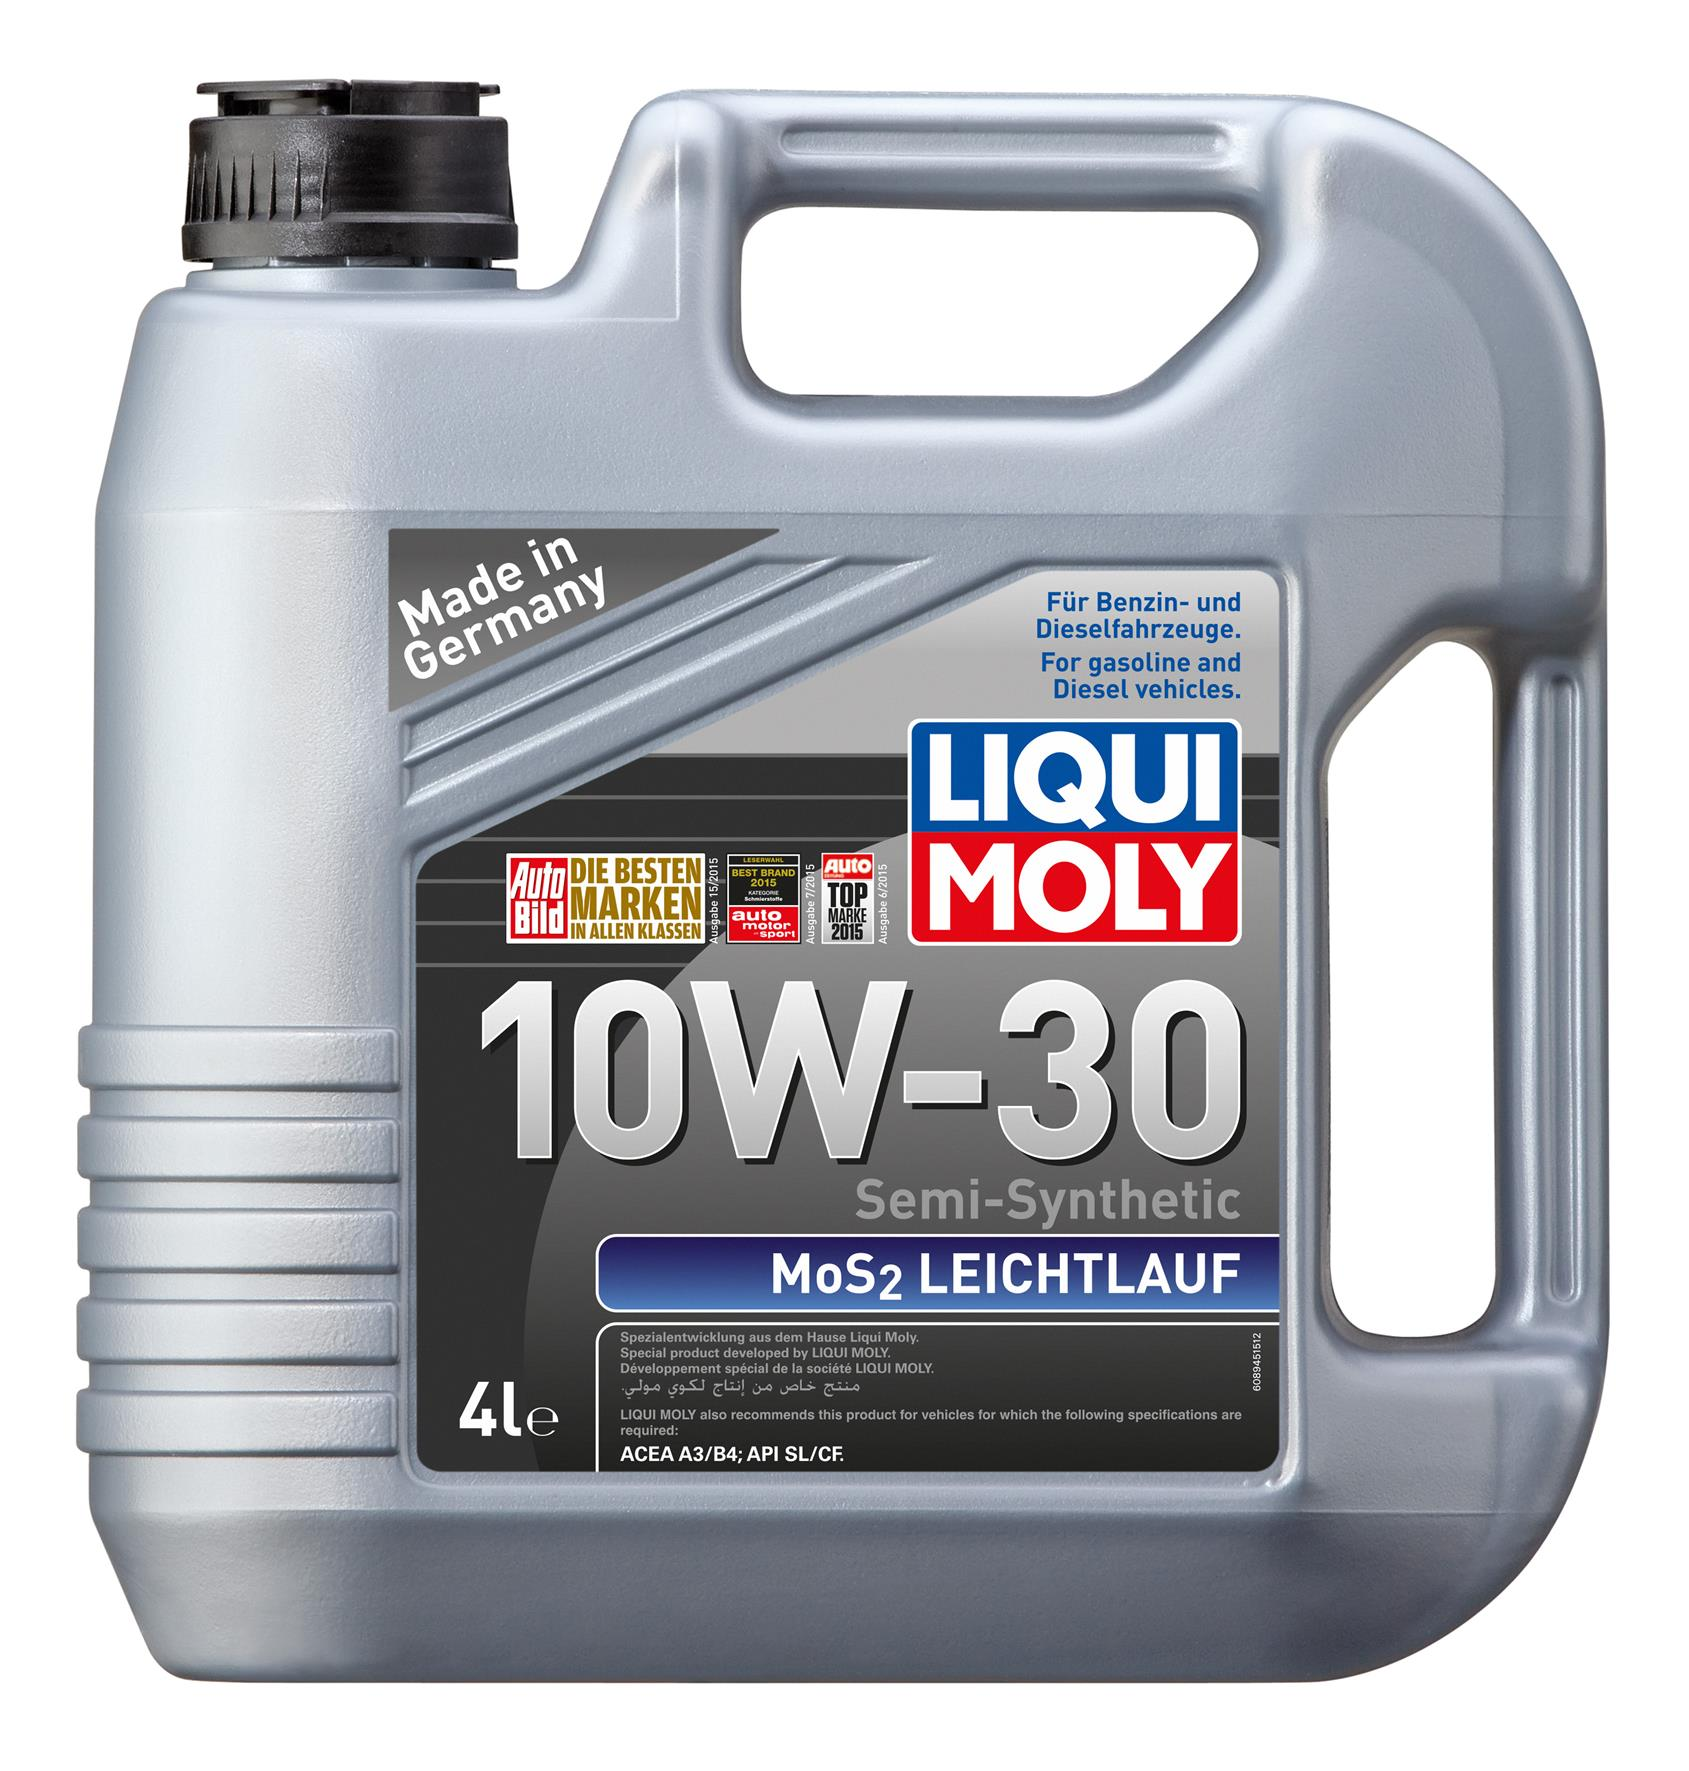 Liqui moly semi synthetic mos2 leic end 12 26 2017 5 15 pm for Type of motor oil